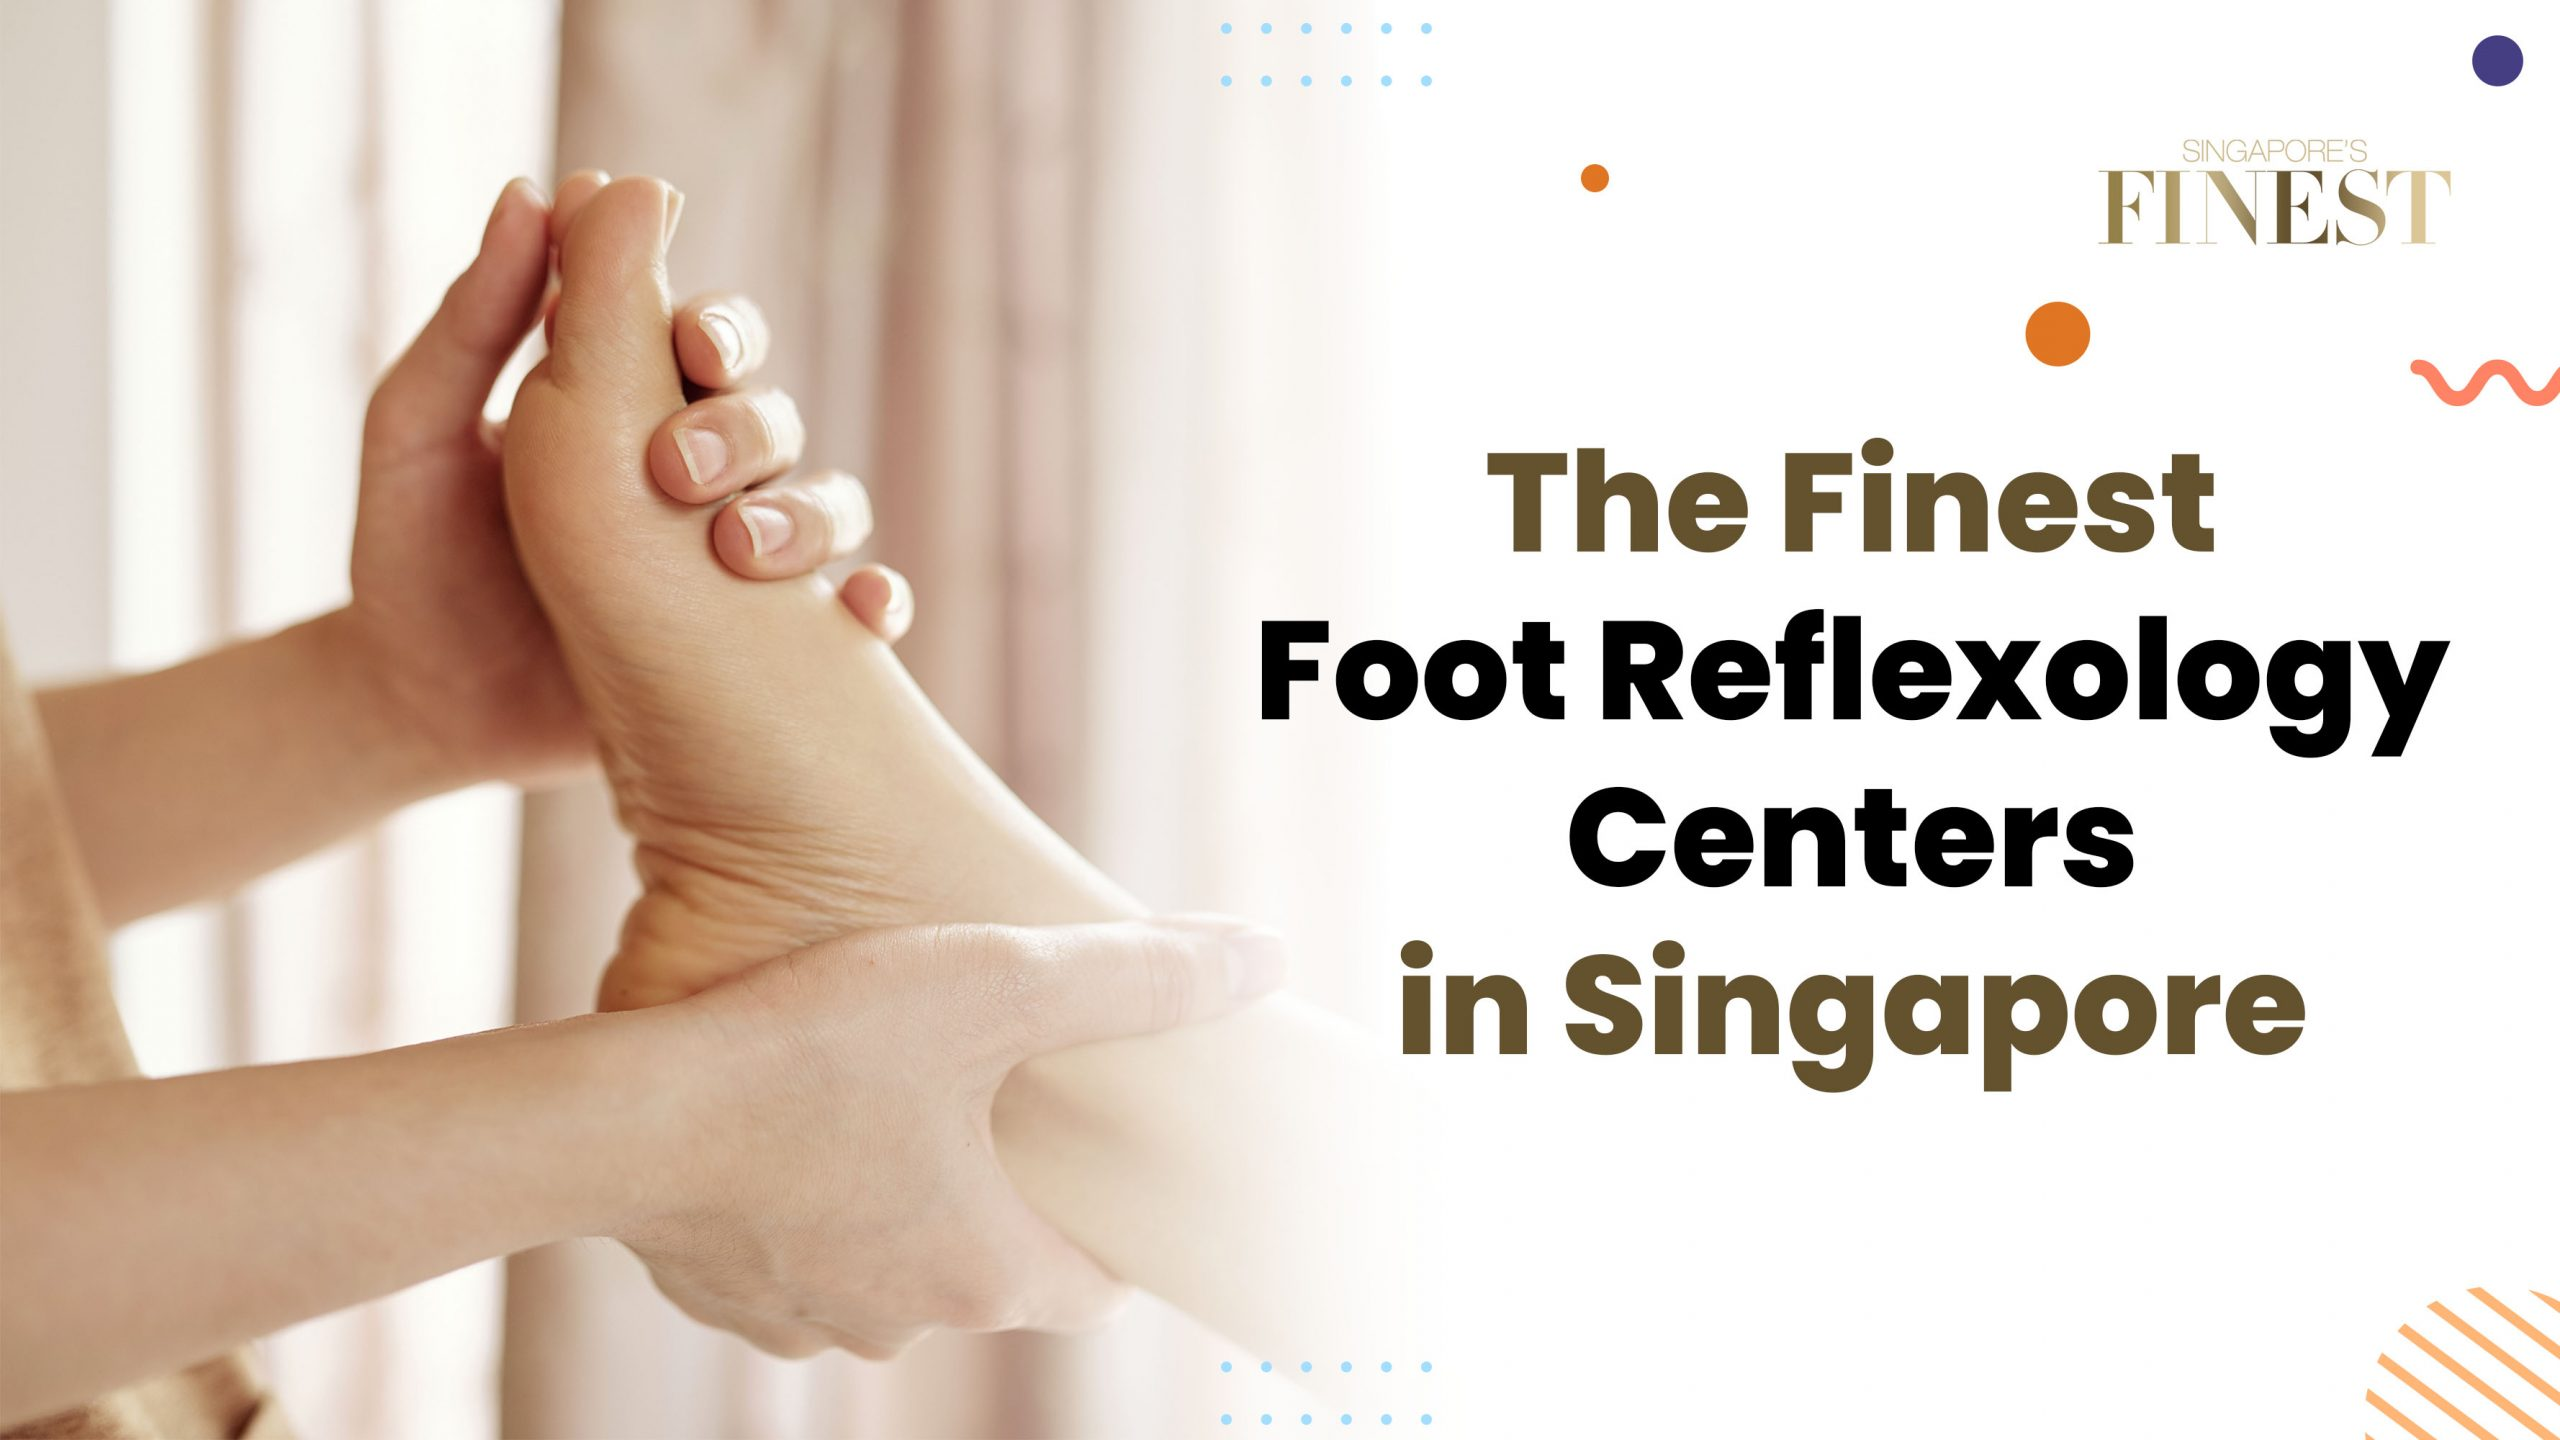 foot reflexology centers in Singapore